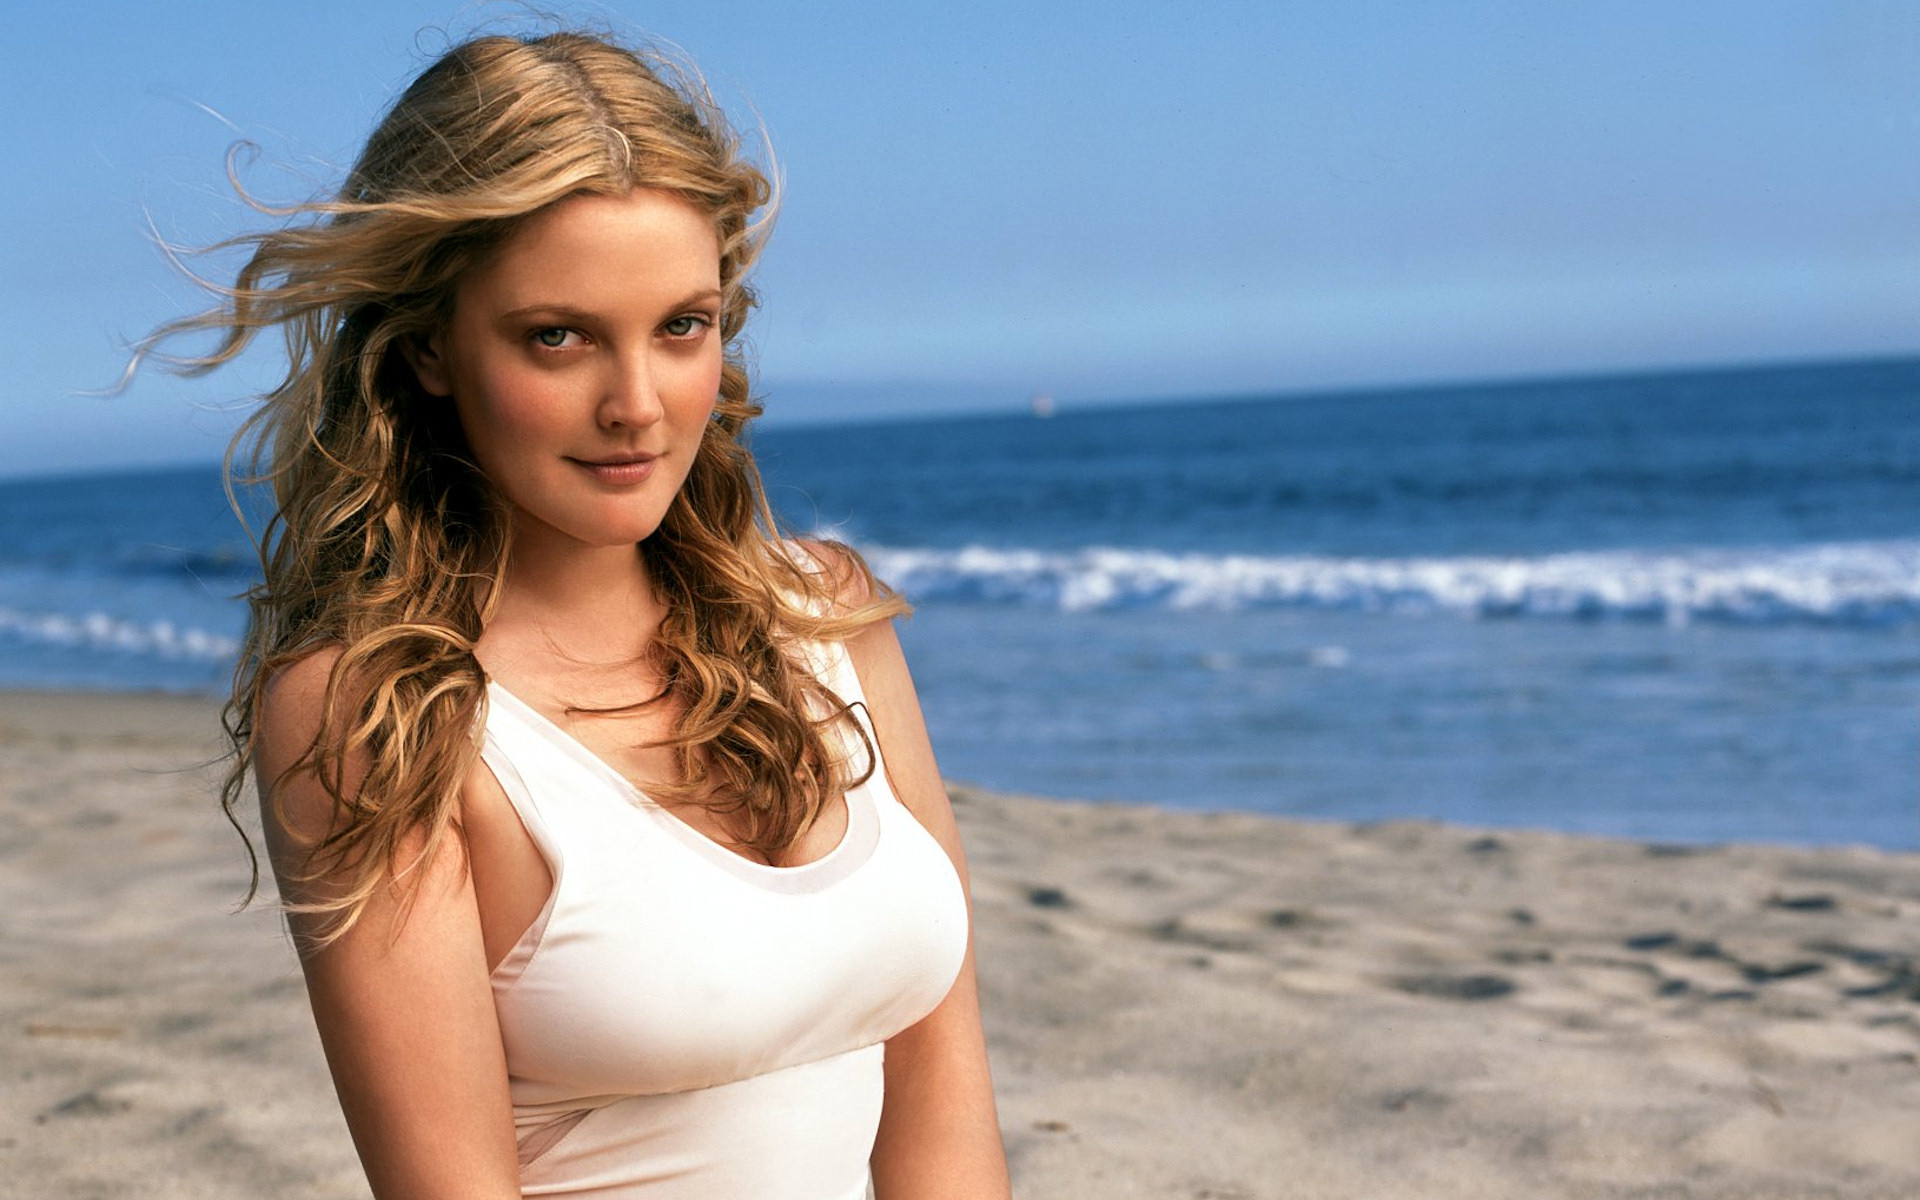 Drew Barrymore 11 wallpaper